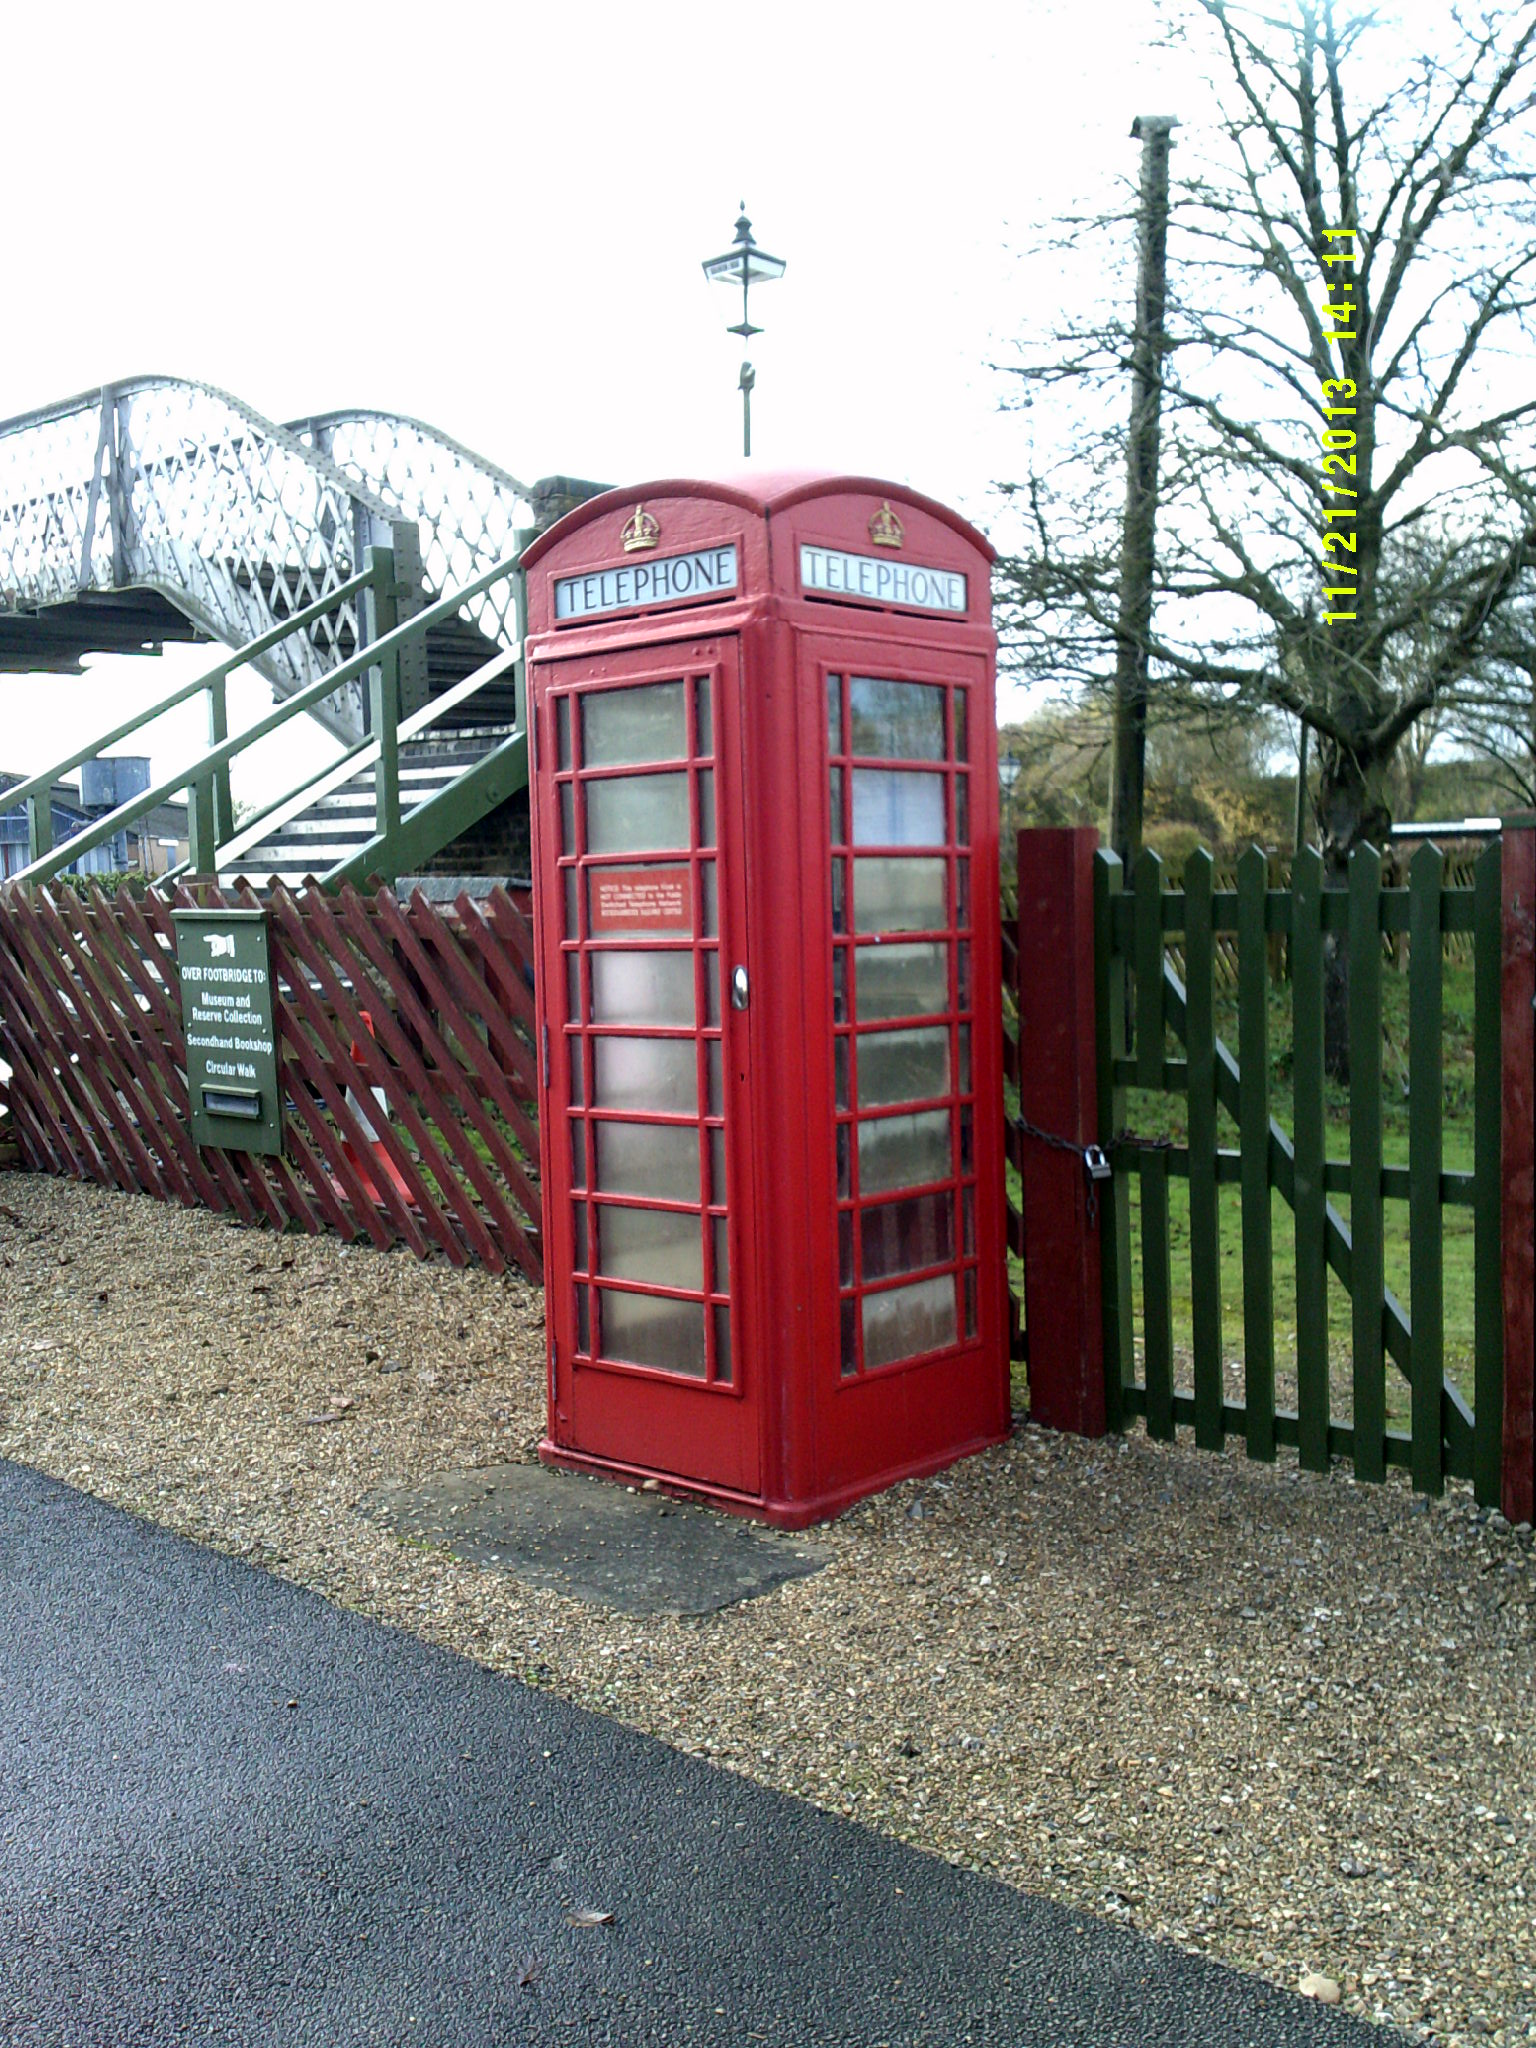 Phonebox01.jpg (786,953 bytes)